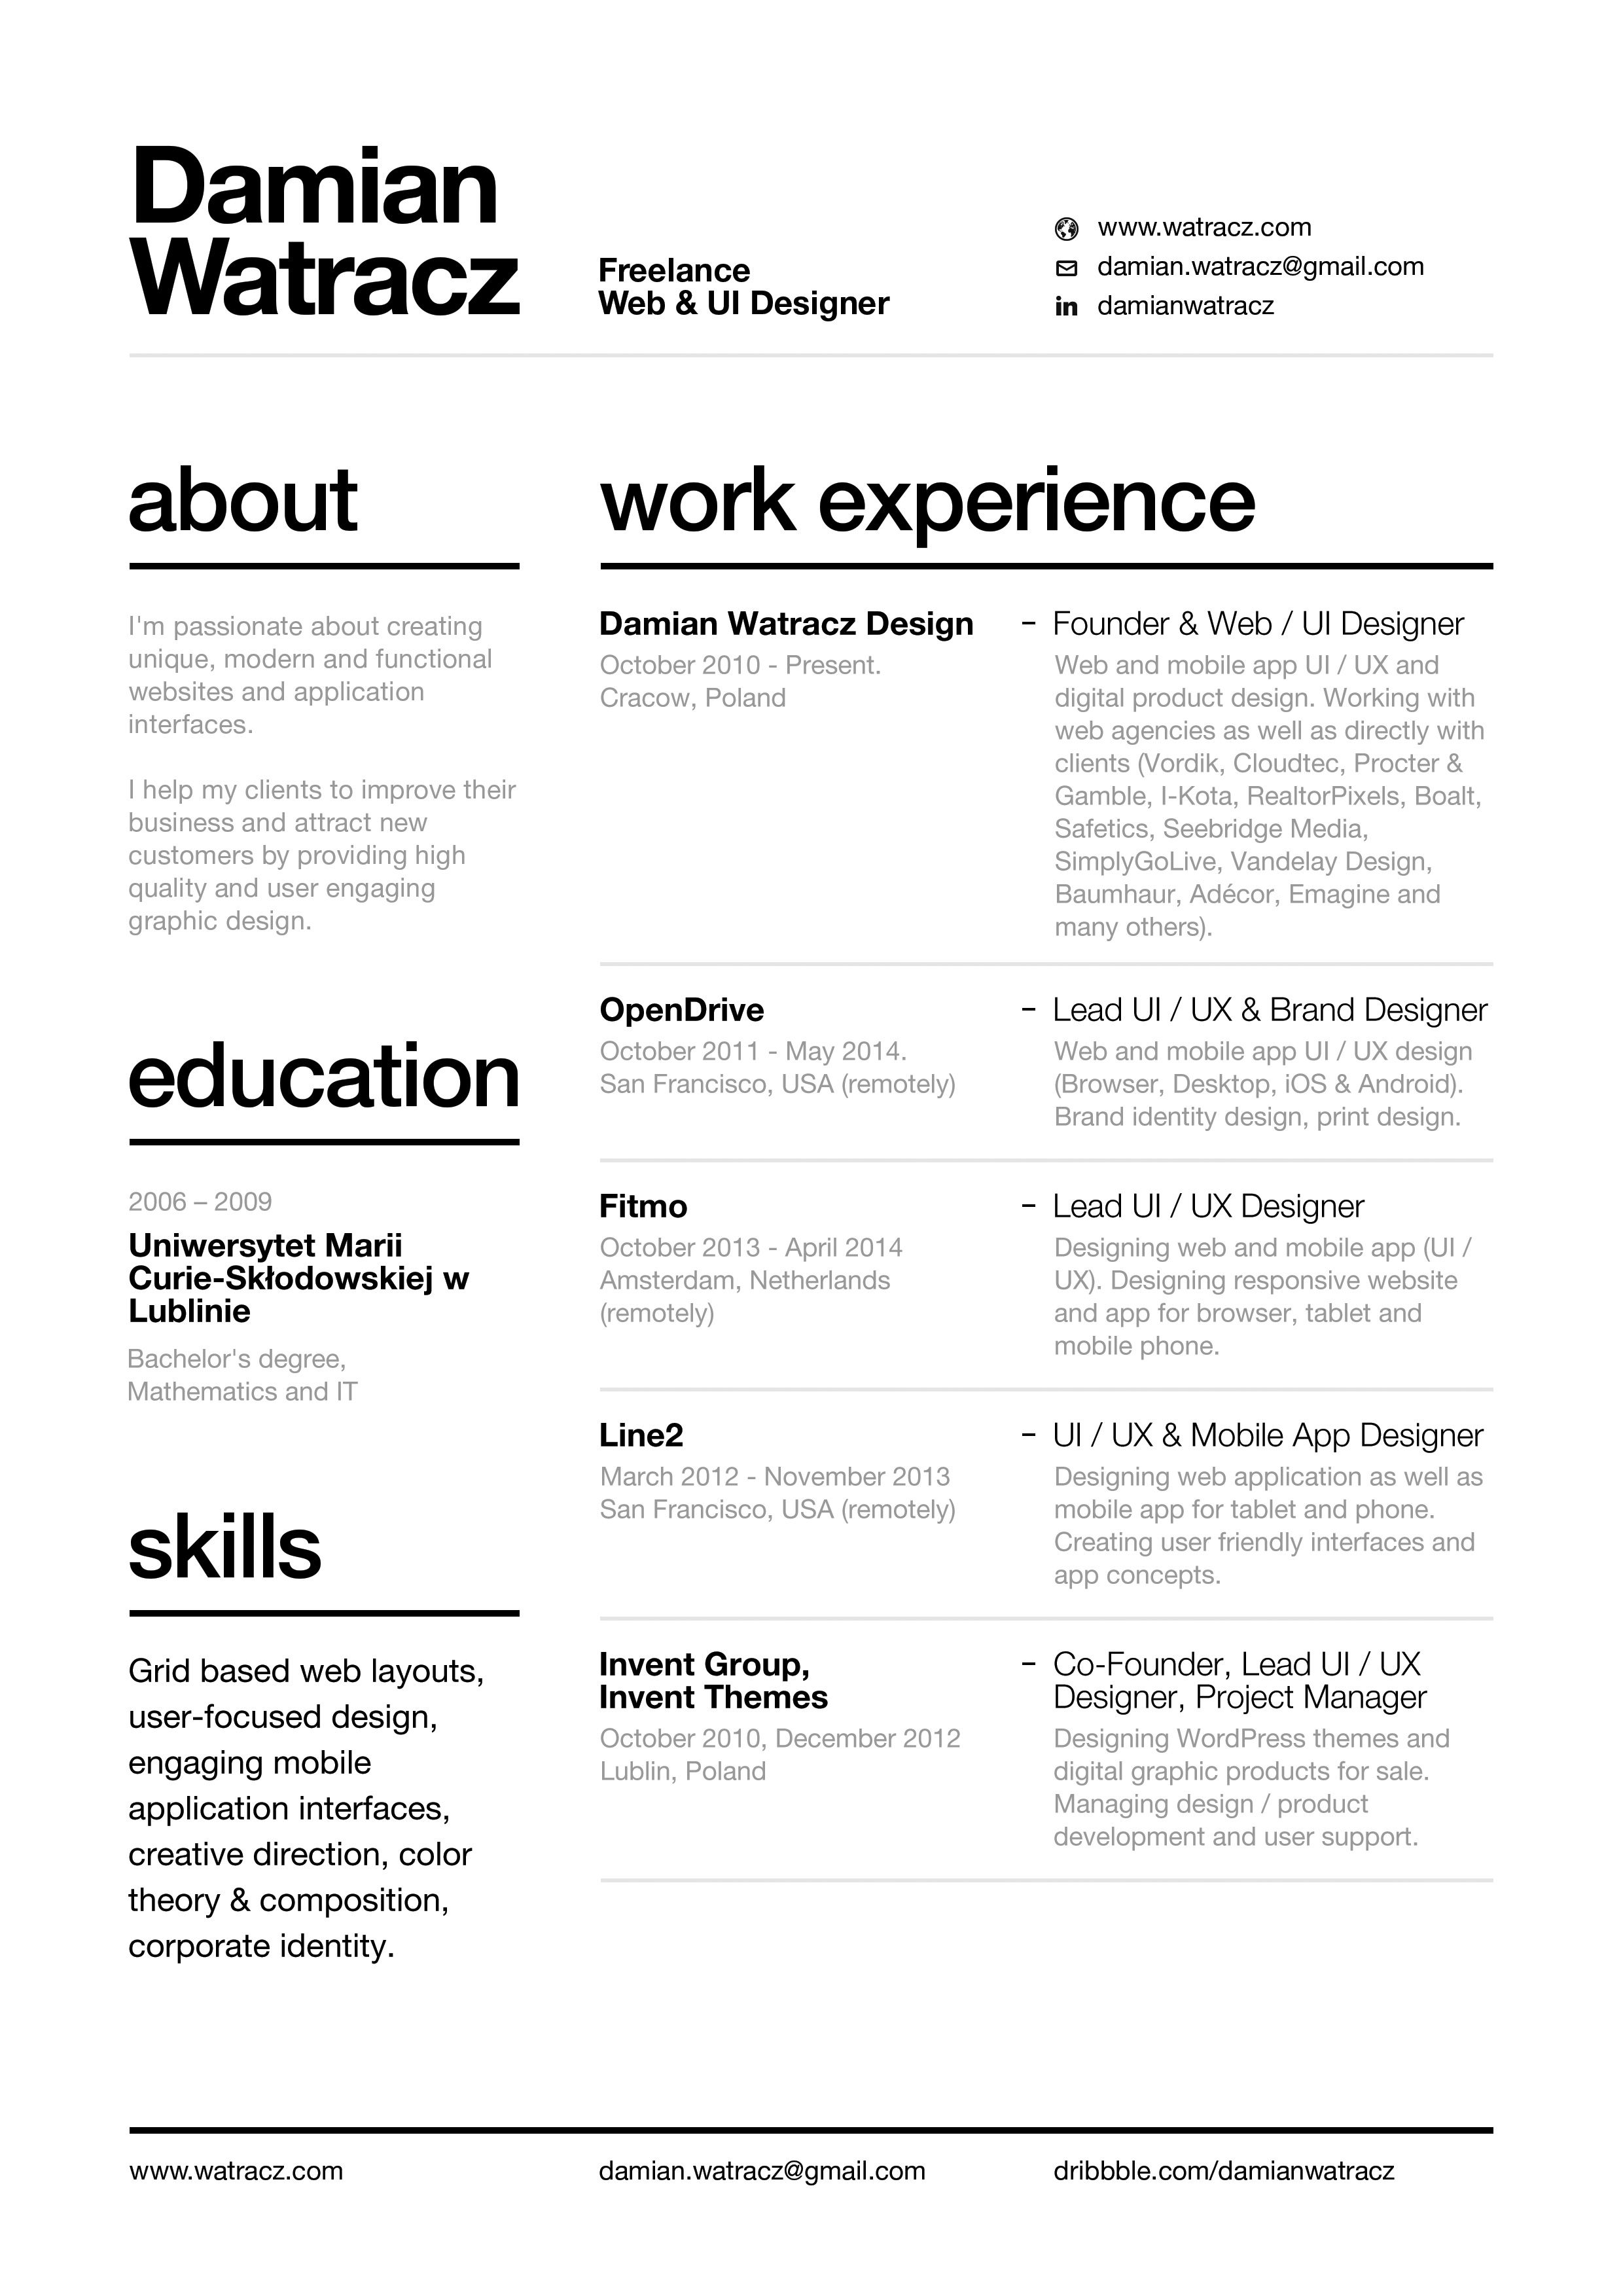 resume with nice layout easy to read font logo s and fonts